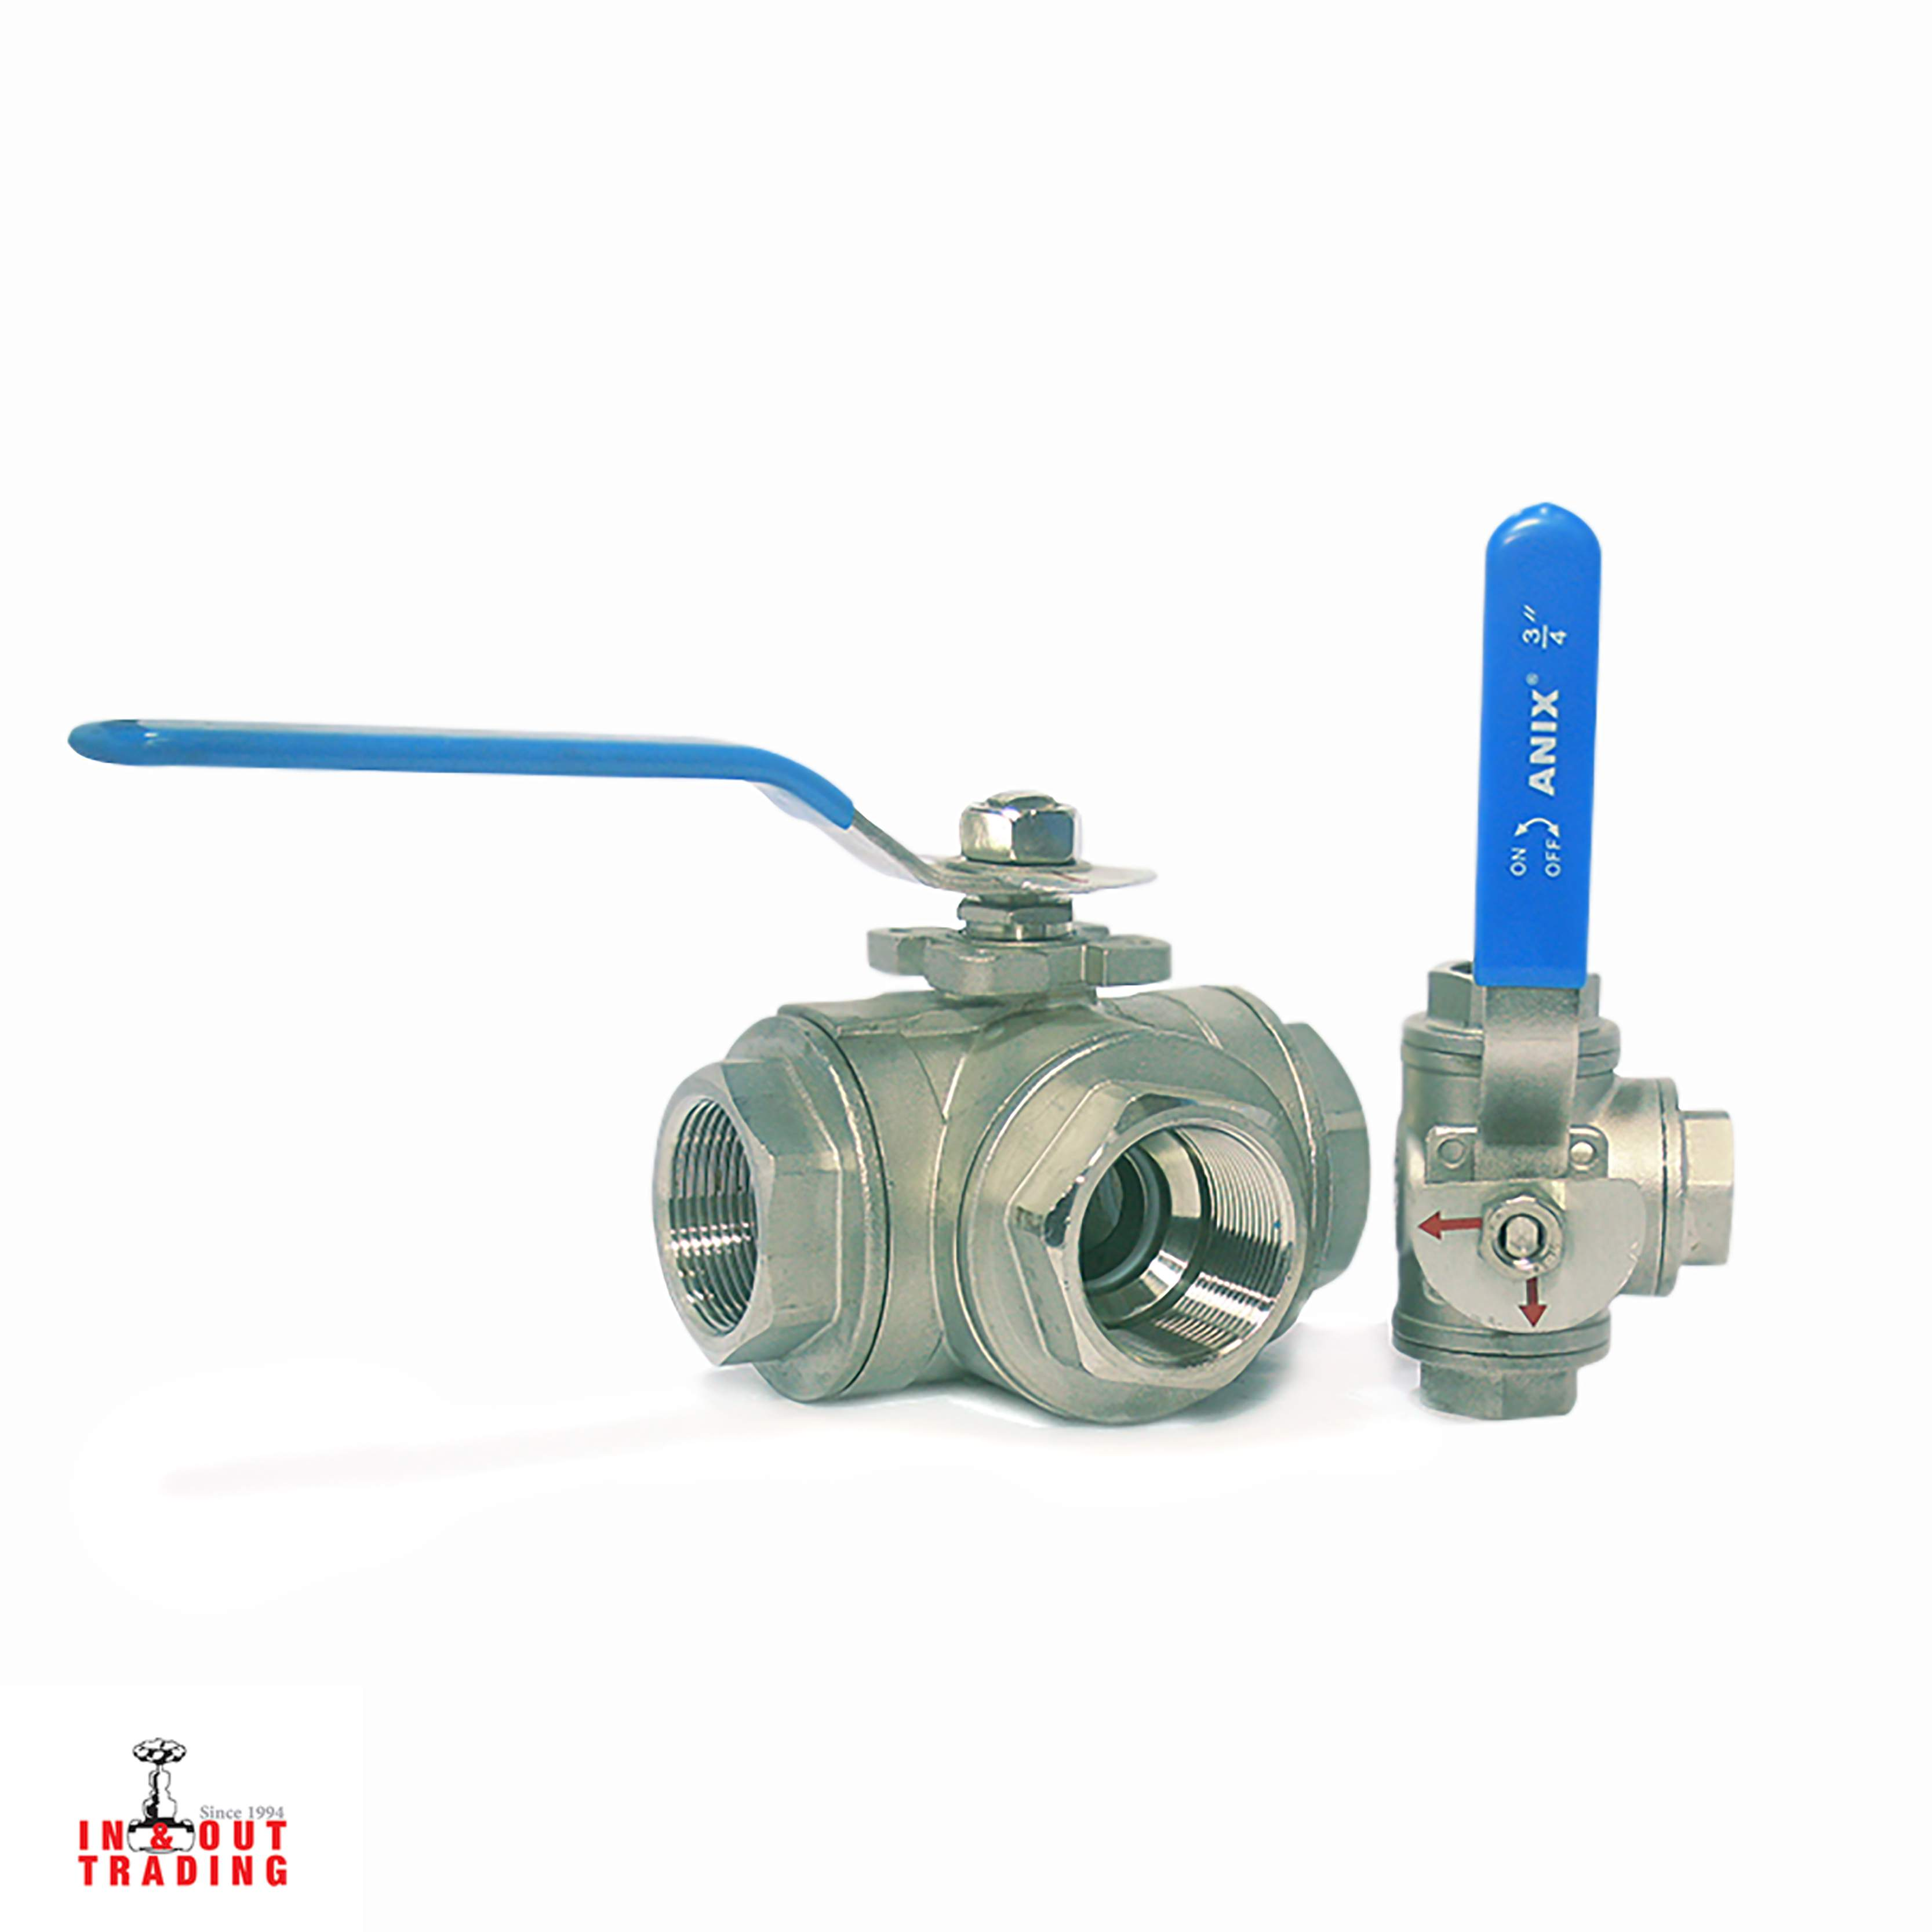 'ANIX - 3 WAY BALL VALVE T & L TYPE SS304 PN64'